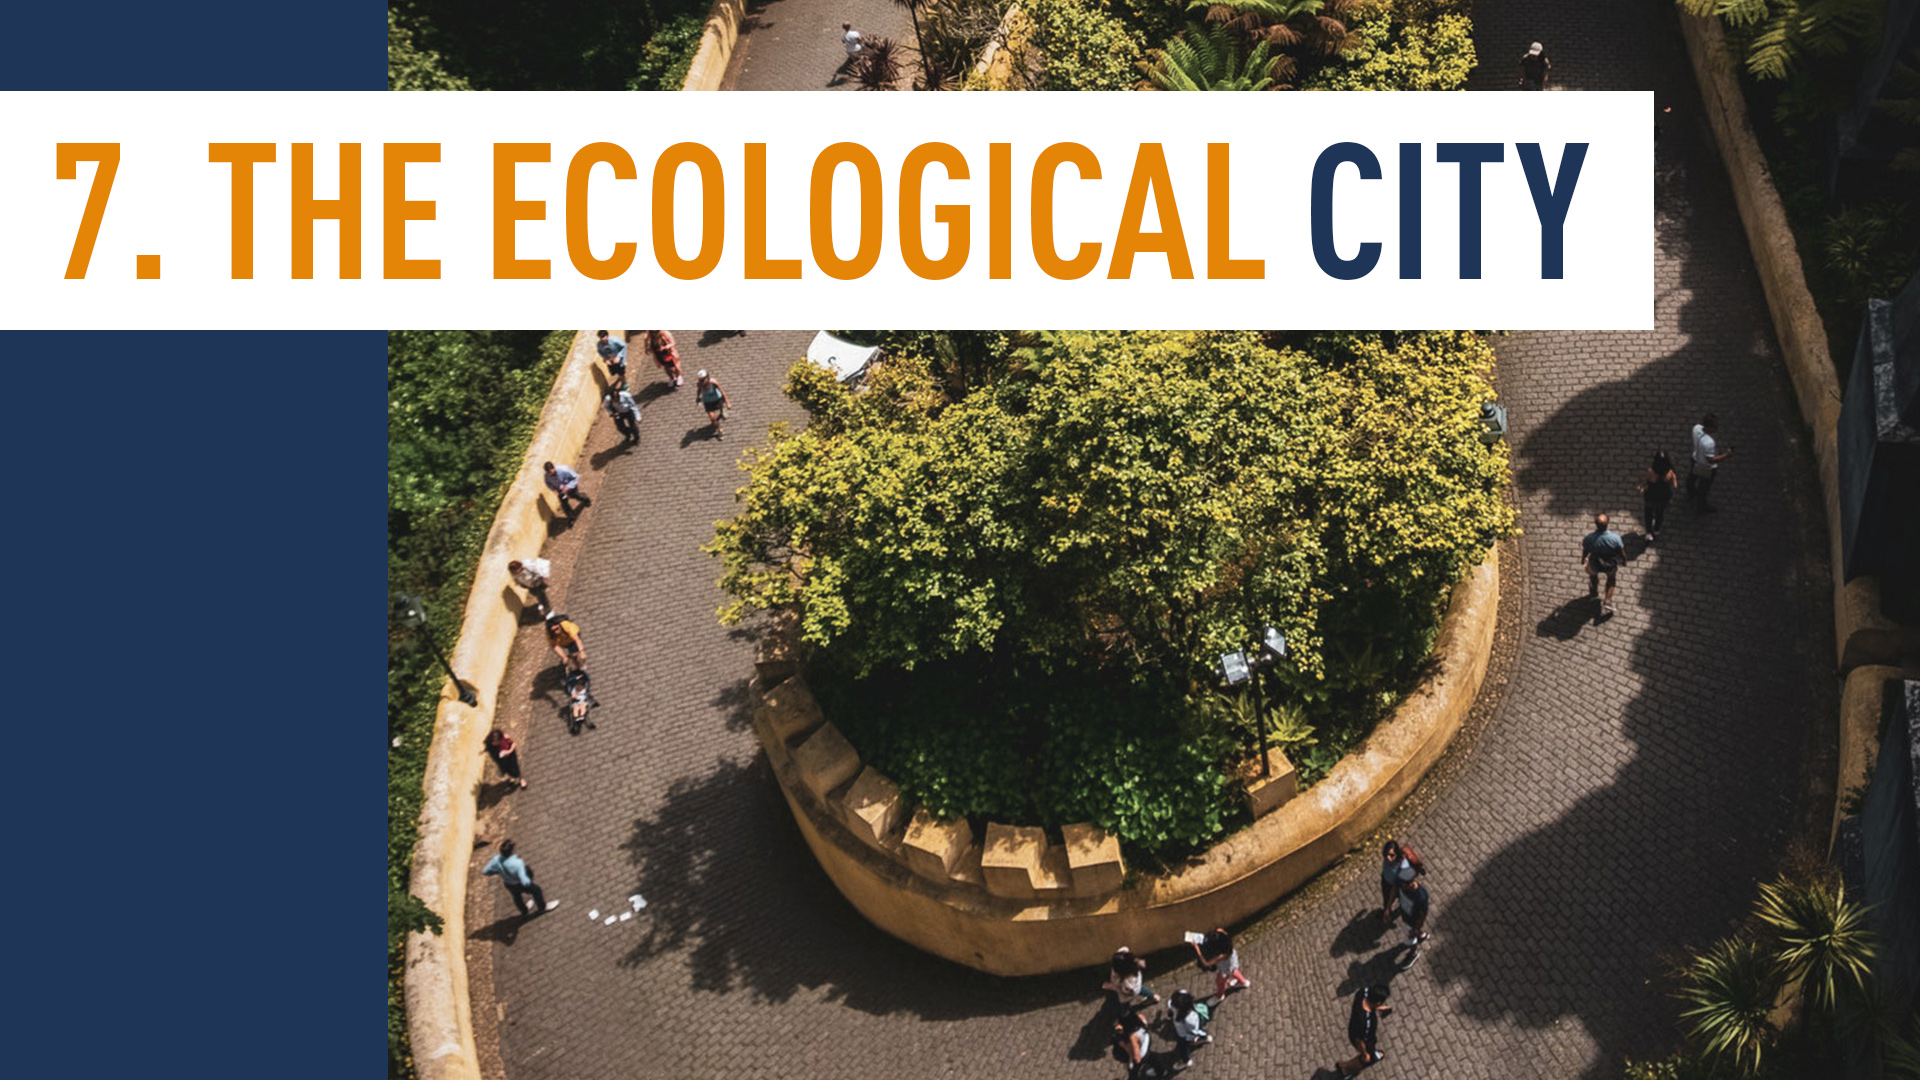 THE ECOLOGICAL CITY